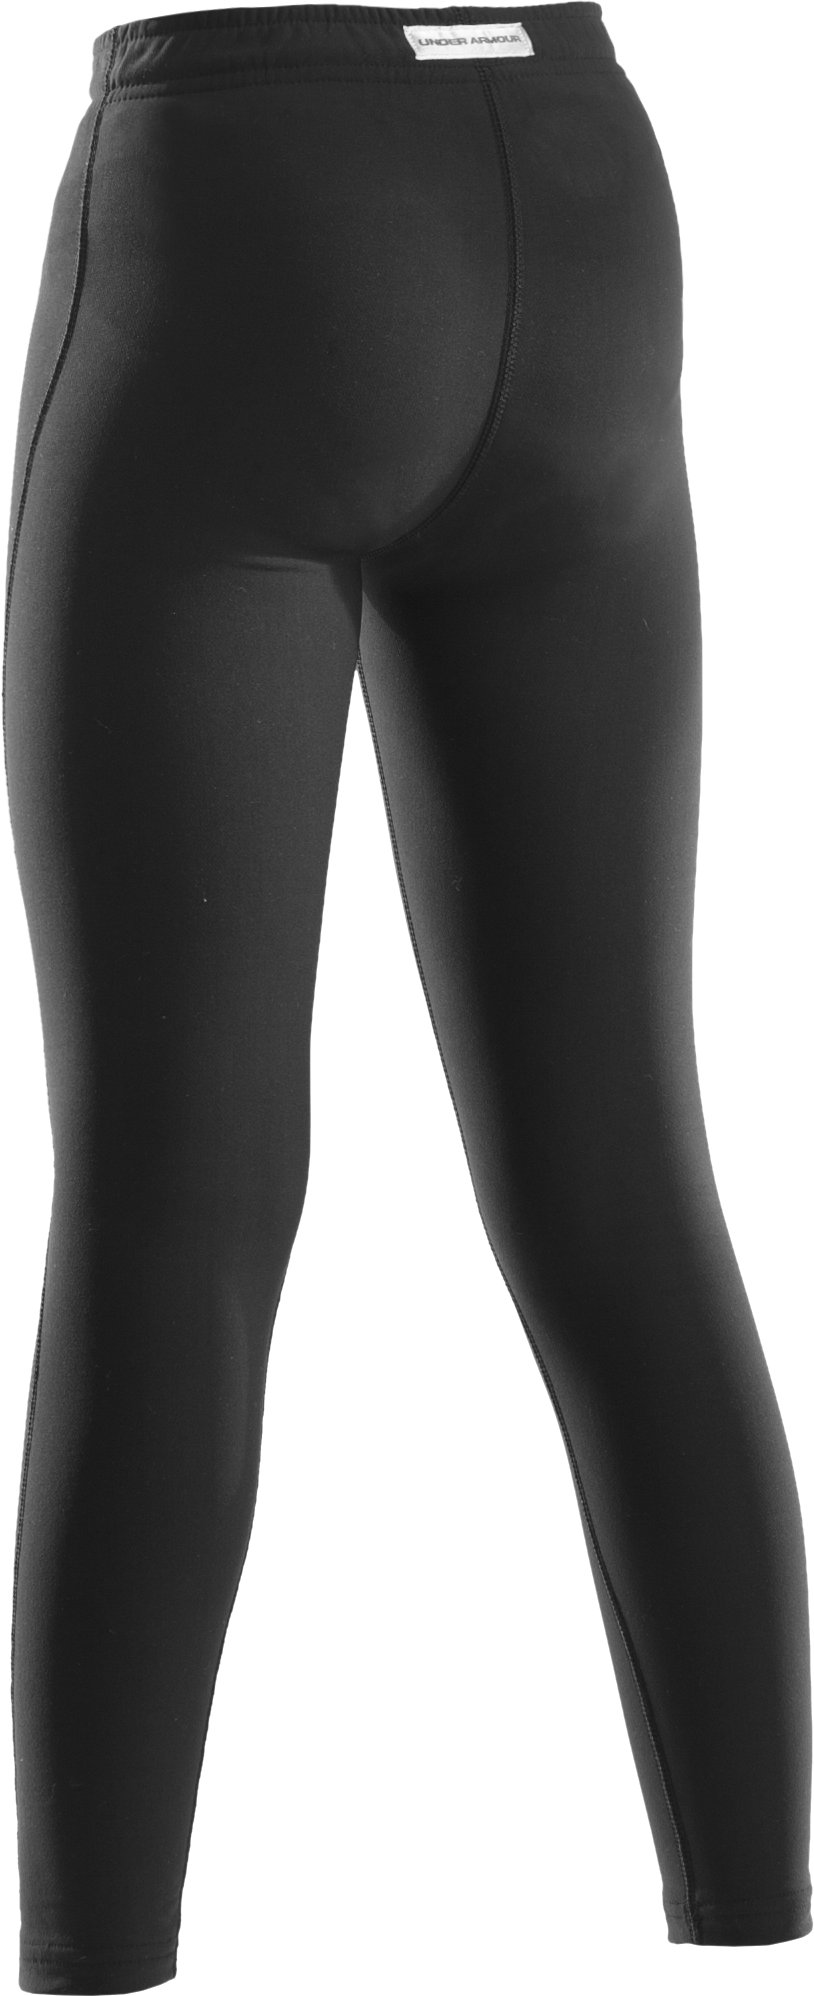 Girls' ColdGear® Fitted Leggings, Black